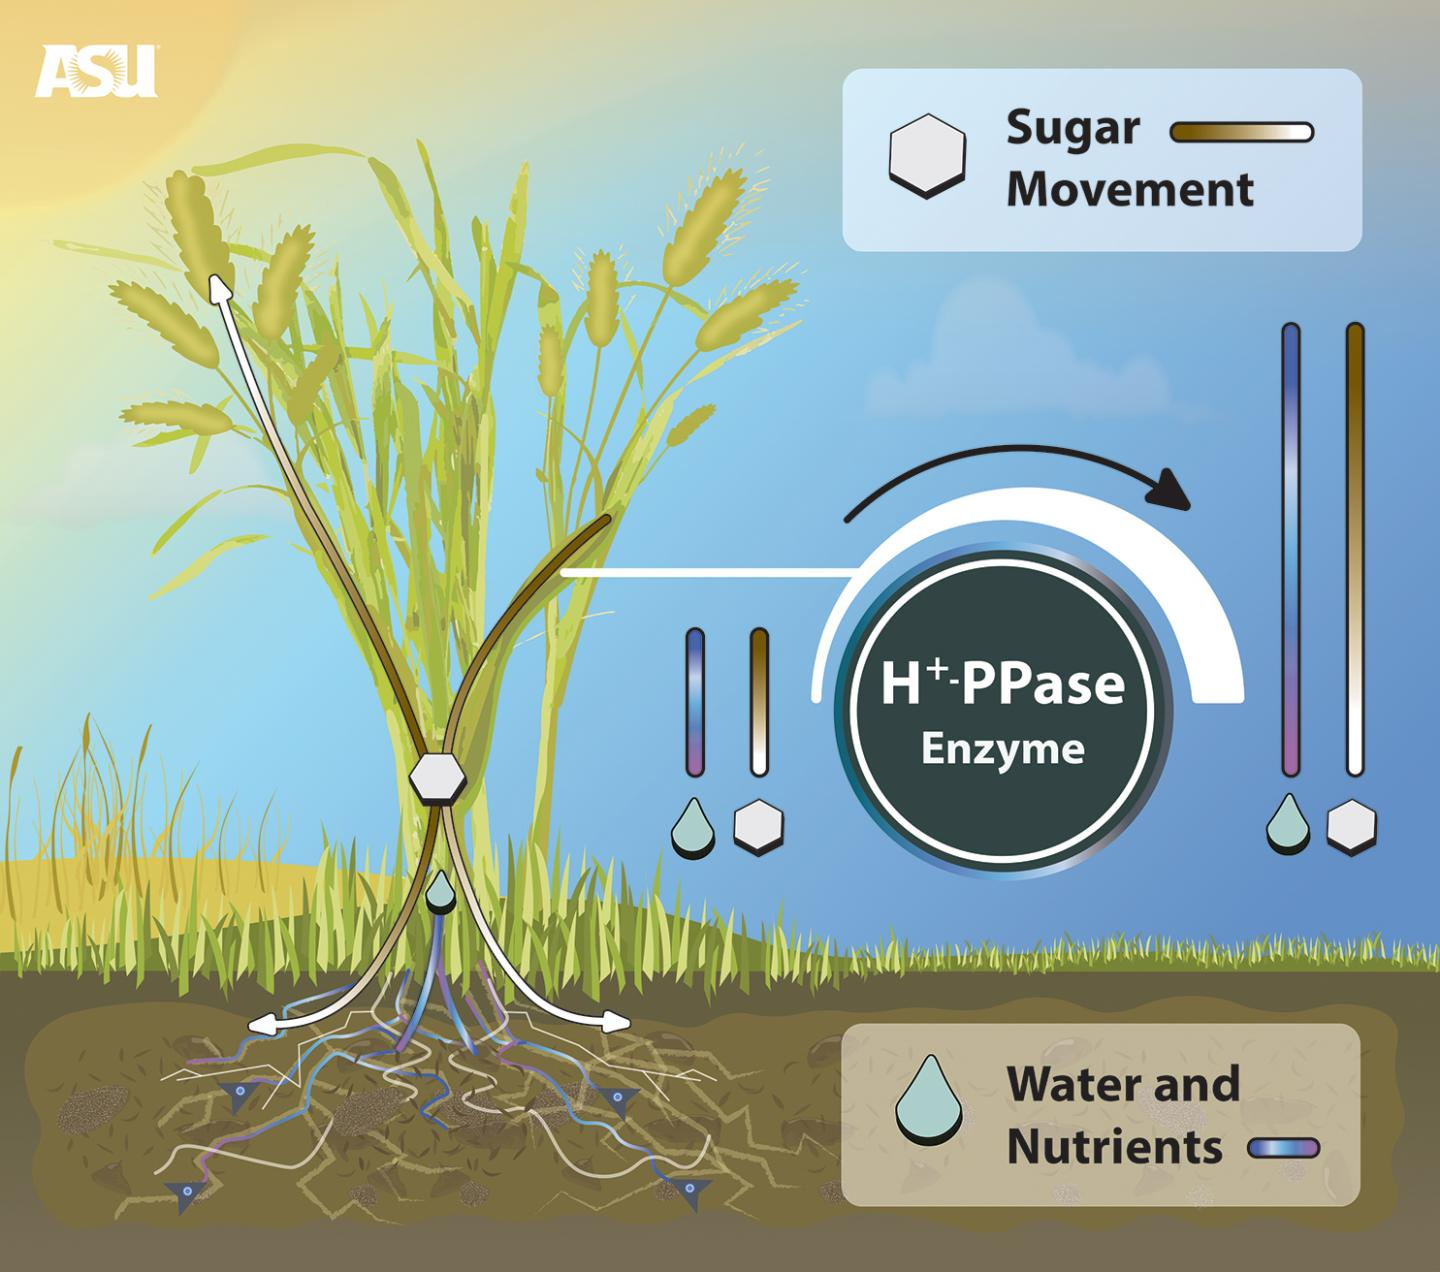 Crop Production Improved with New Biotechnology Created by ASU Researcher